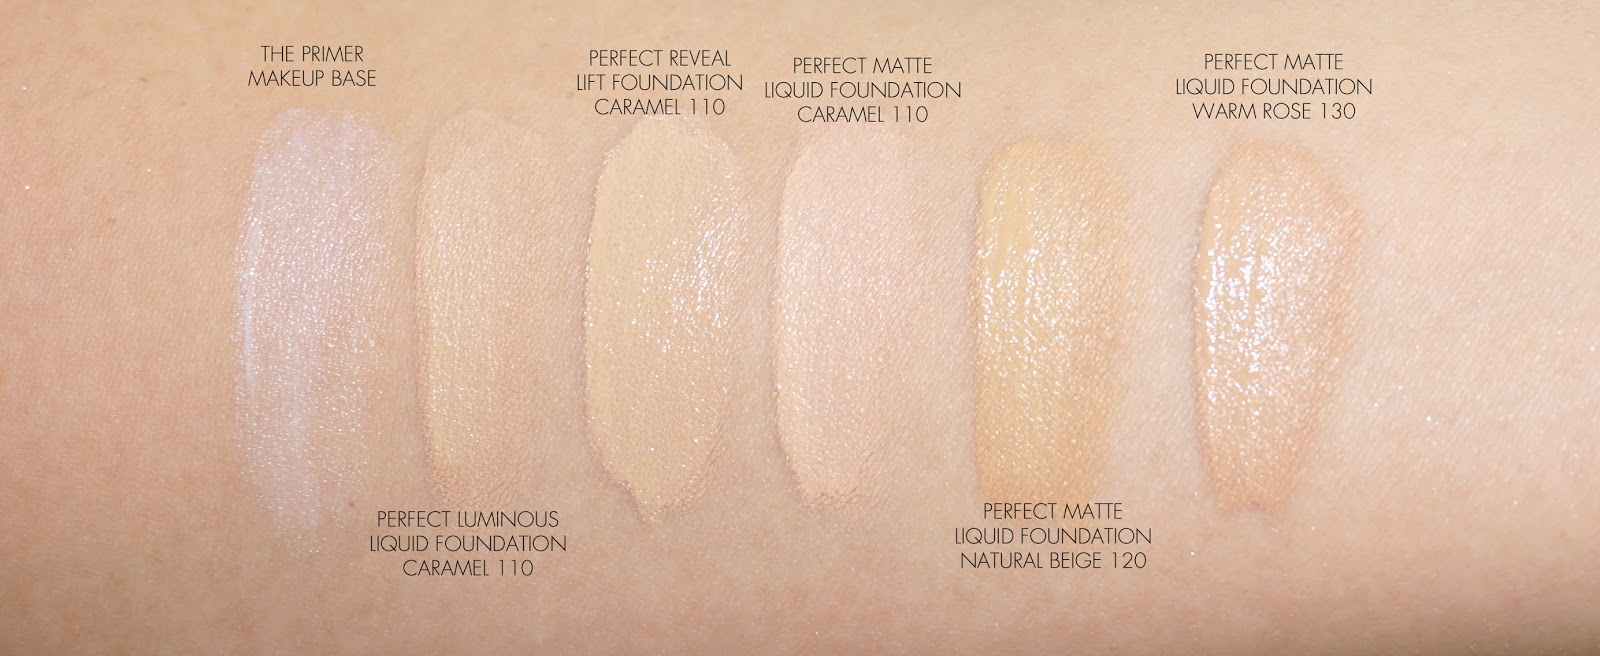 5b5353aa3b1 A few comparison swatches to other foundations I have in rotation for  reference